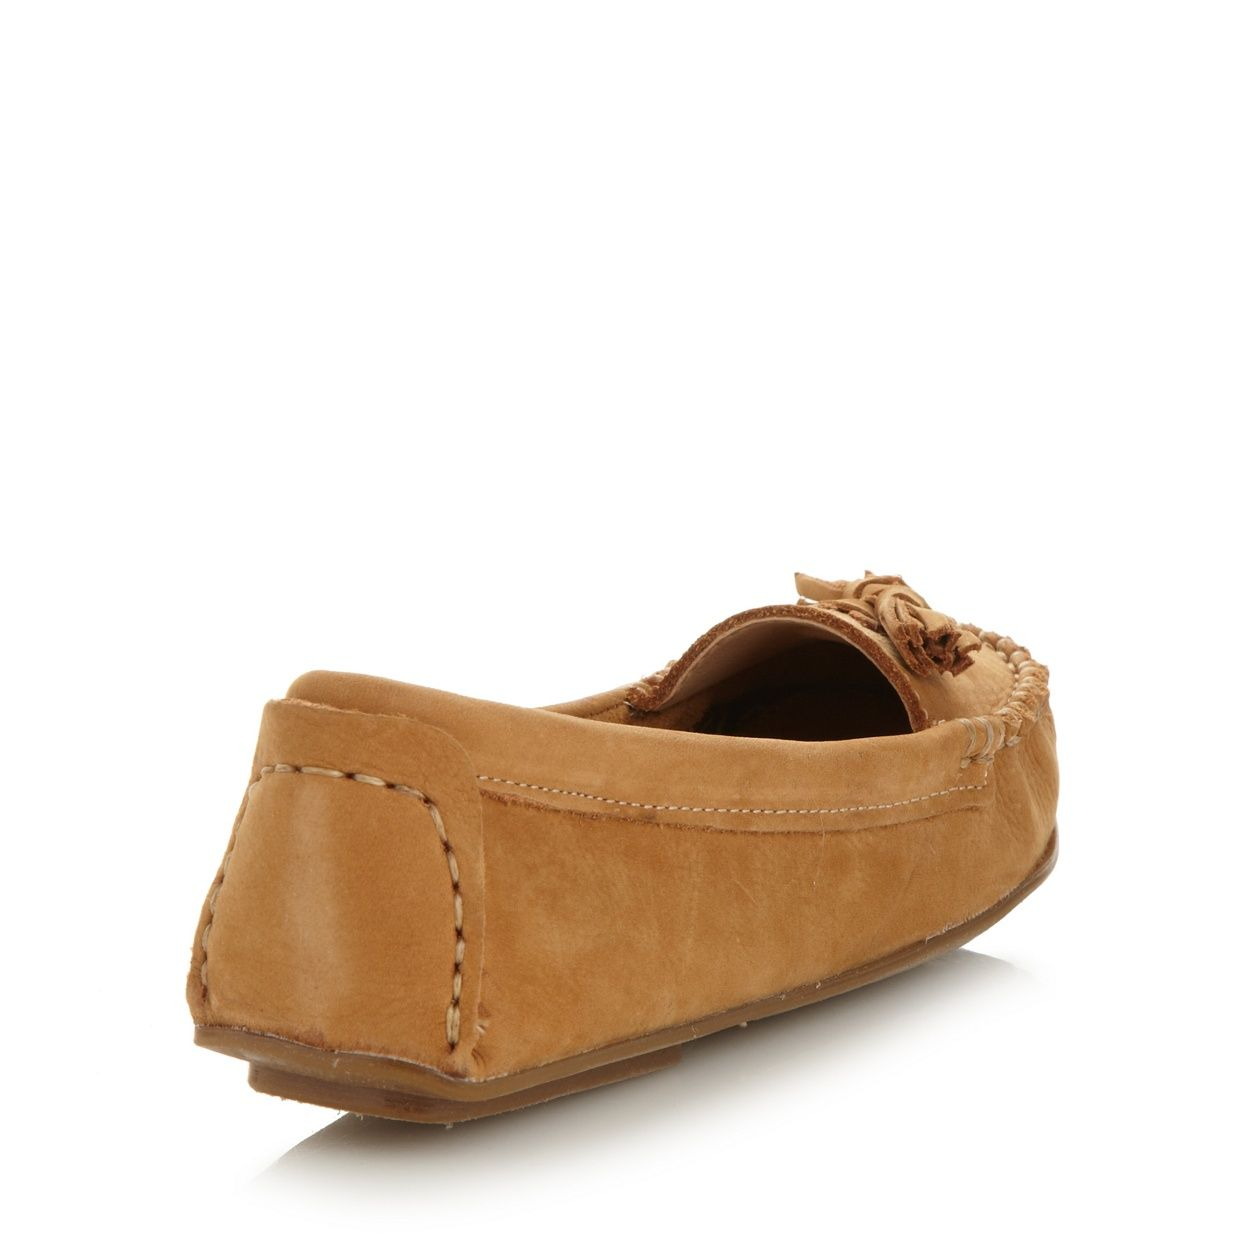 These light tan loafers from Soul of Africa are made from soft, breathable leather with tassel trims and a flexible rubber outsole. They are hand stitched as part of the 'Aid Through Trade' charity project to create employment for those in need.